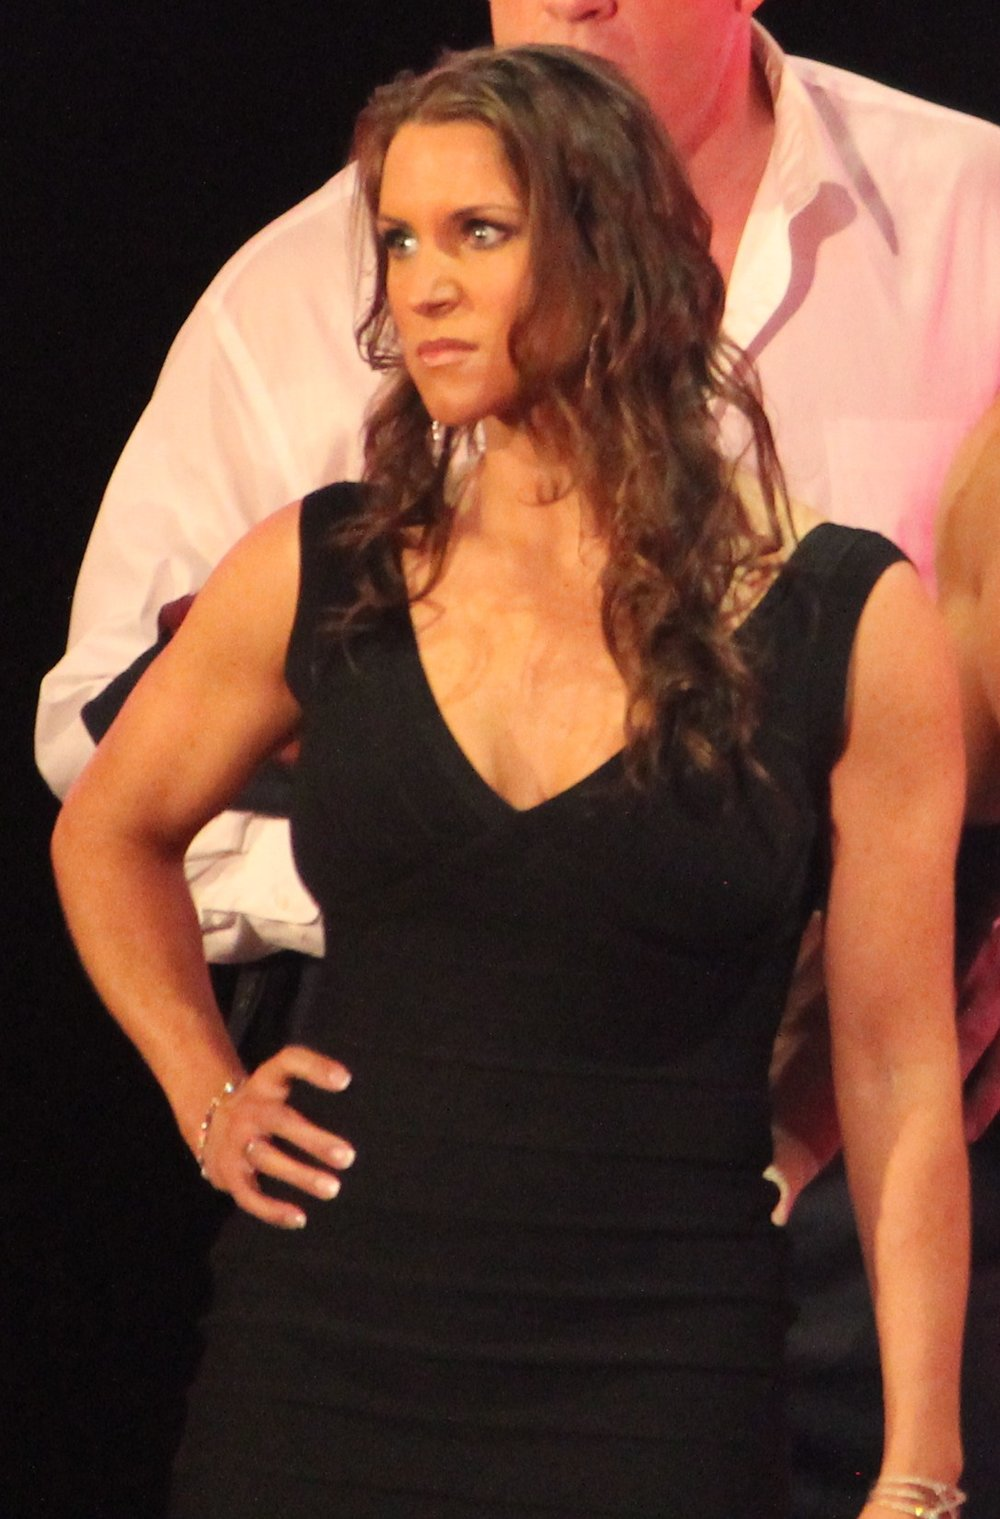 Stephanie McMahon . Original image by  Megan Elice Meadows via Flickr